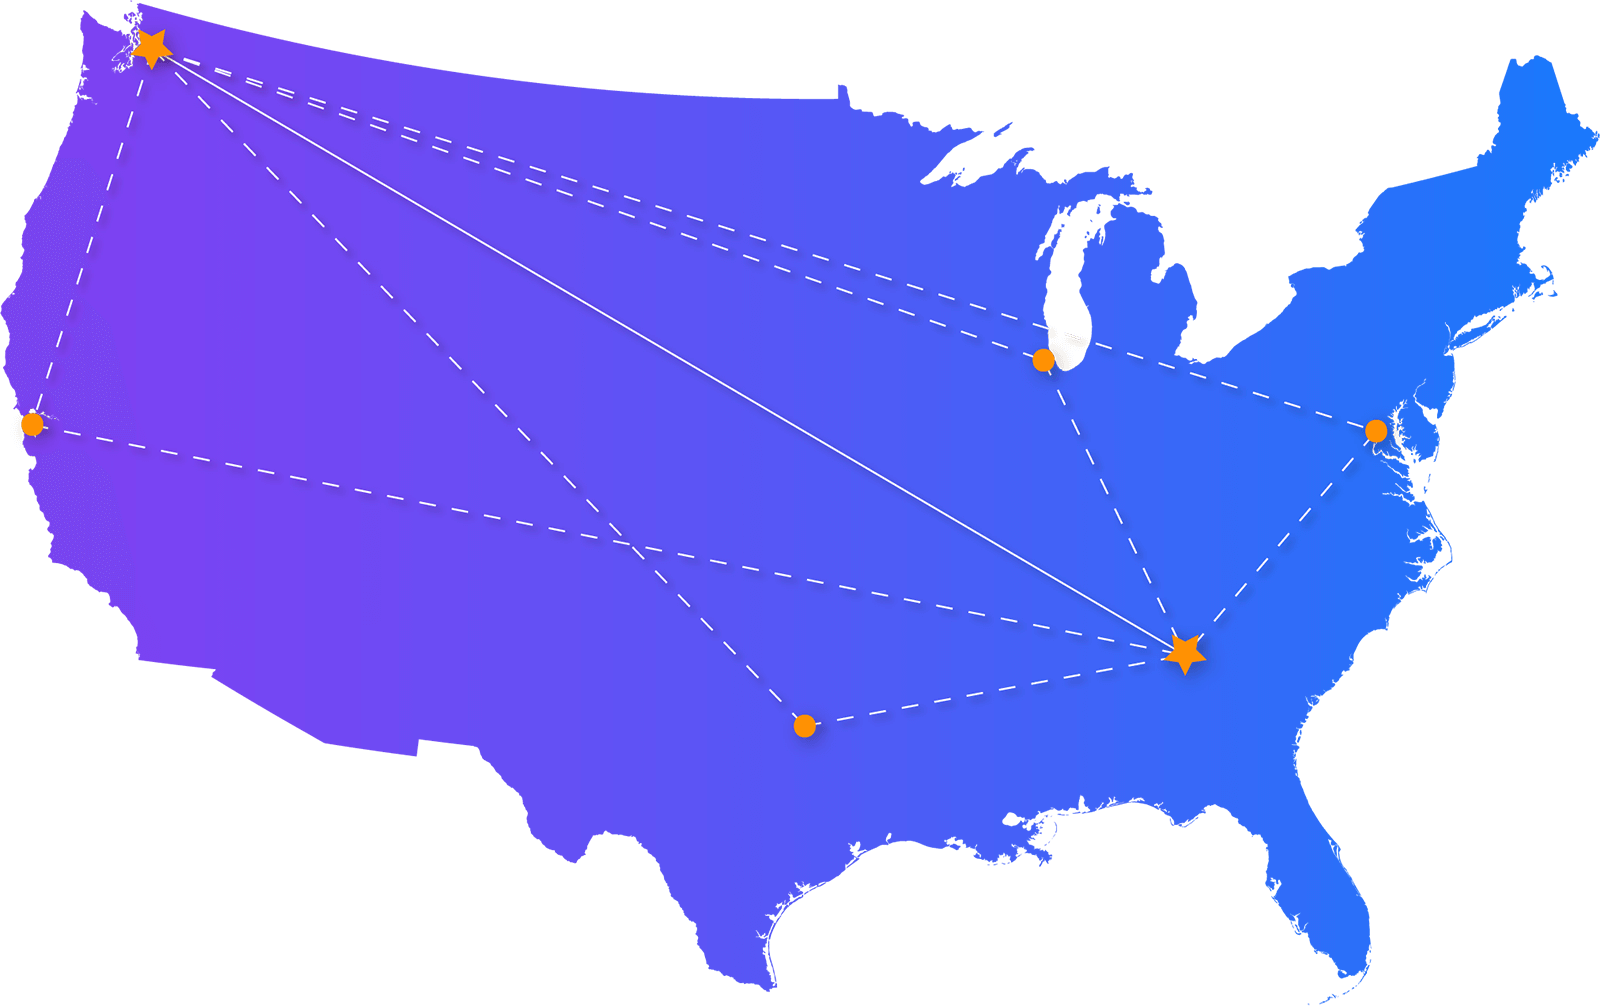 Map of Lightspeed's Data Centers and Points of Presence in the United States.